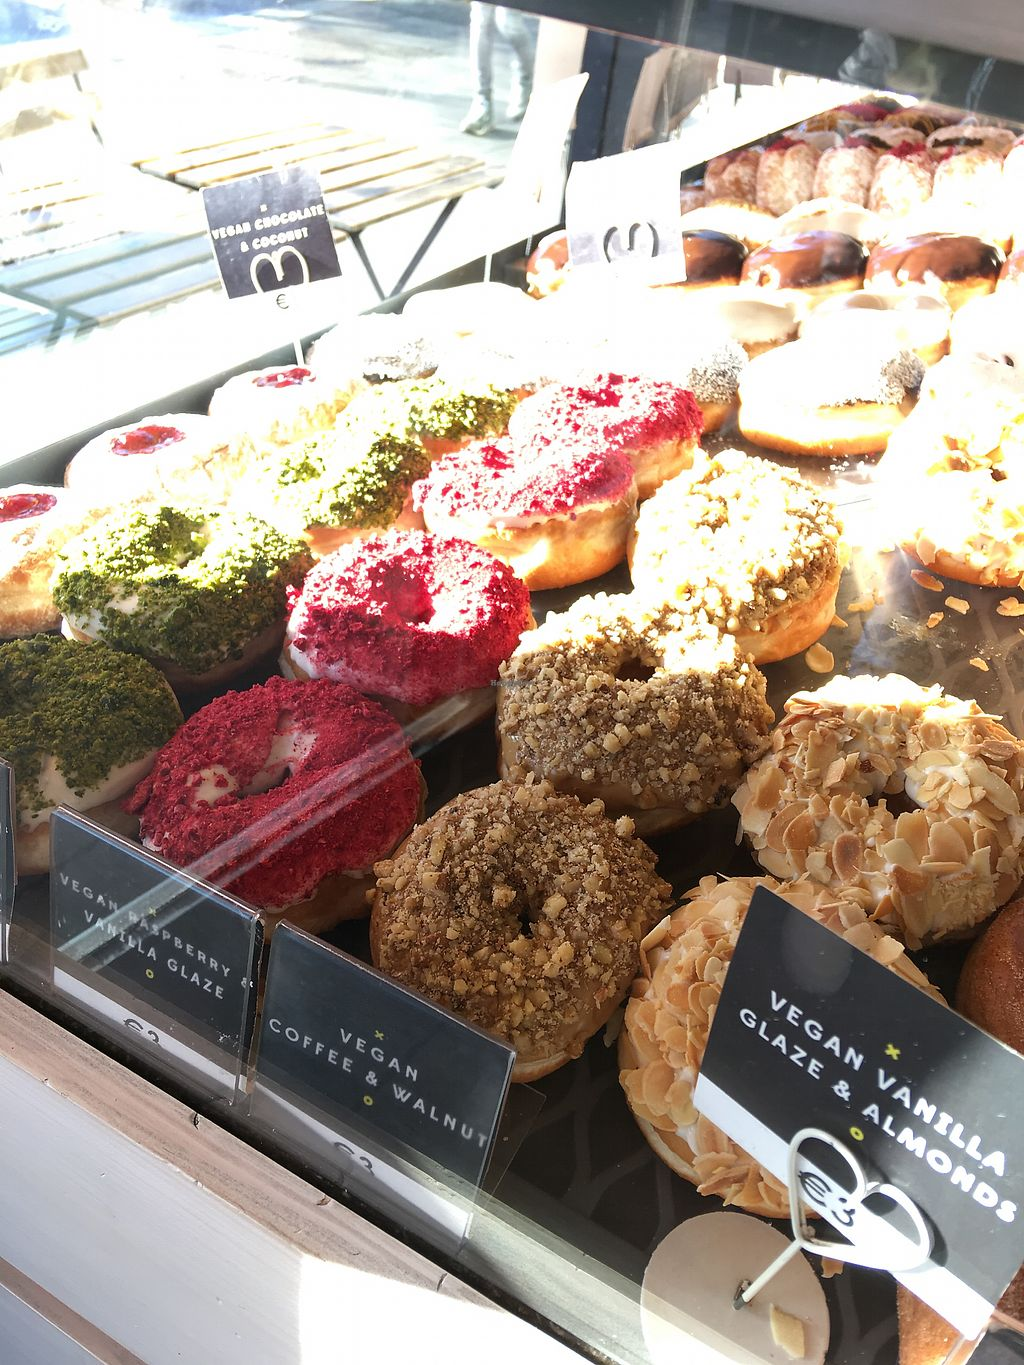 """Photo of The Rolling Donut - Dublin 1  by <a href=""""/members/profile/gbird2"""">gbird2</a> <br/>Yummy <br/> February 9, 2018  - <a href='/contact/abuse/image/83413/356733'>Report</a>"""